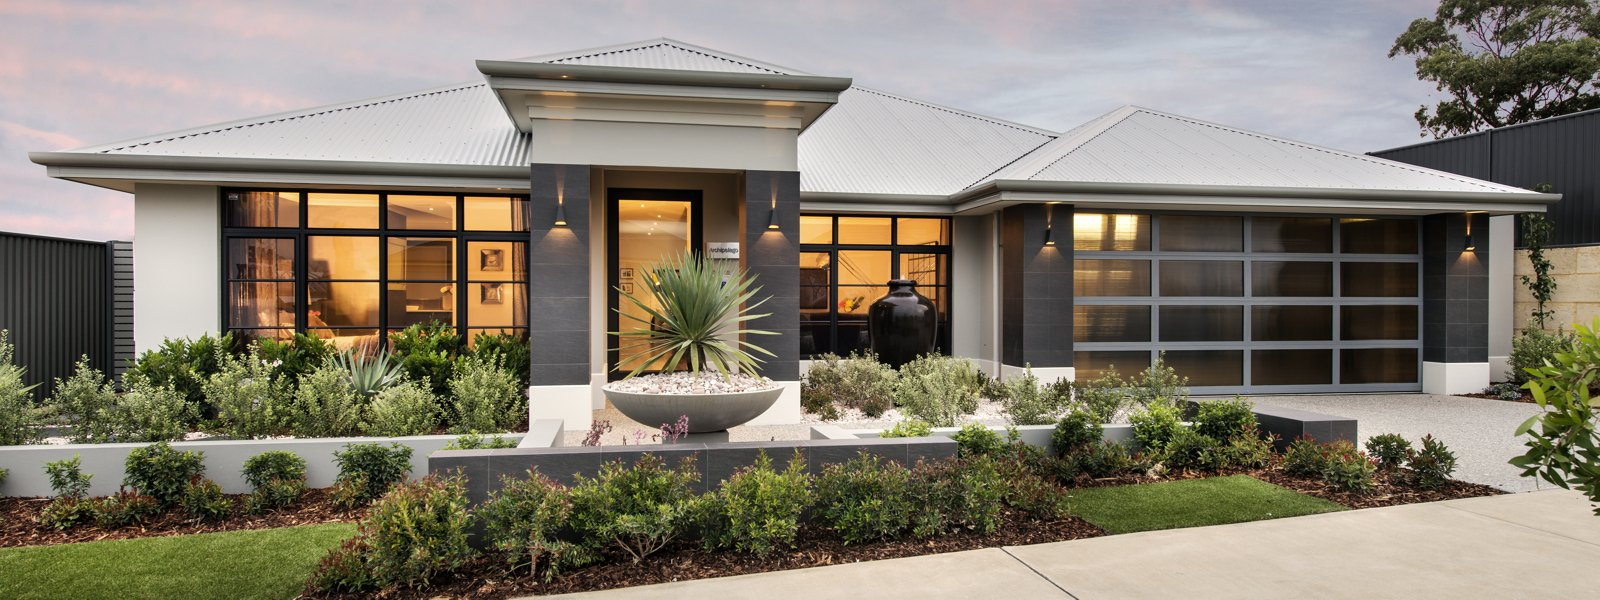 Front yard designs western australia modern house on the for Beach house designs western australia